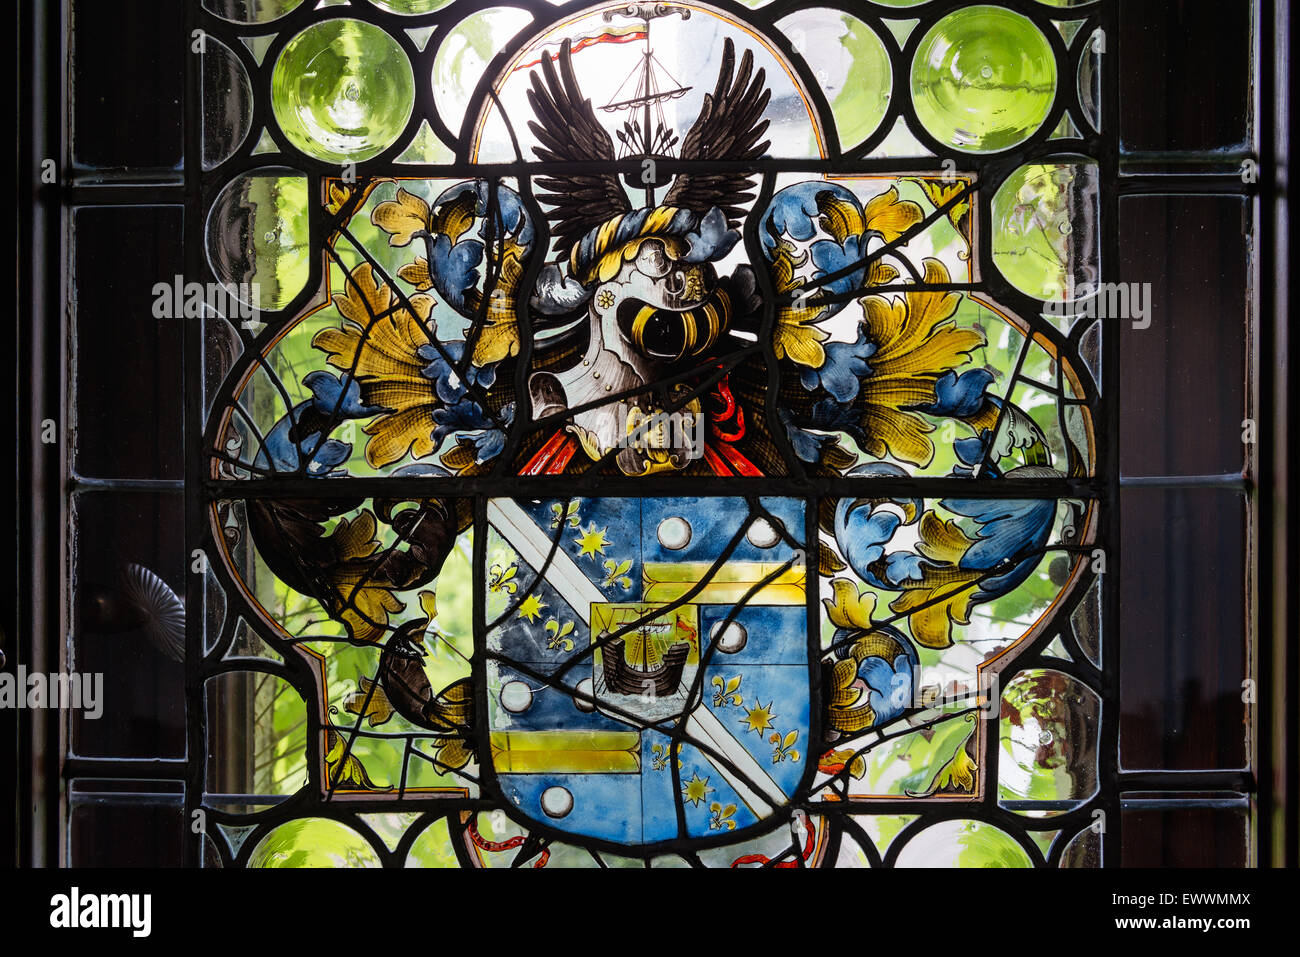 Coat of arms in stained glass window - Stock Image